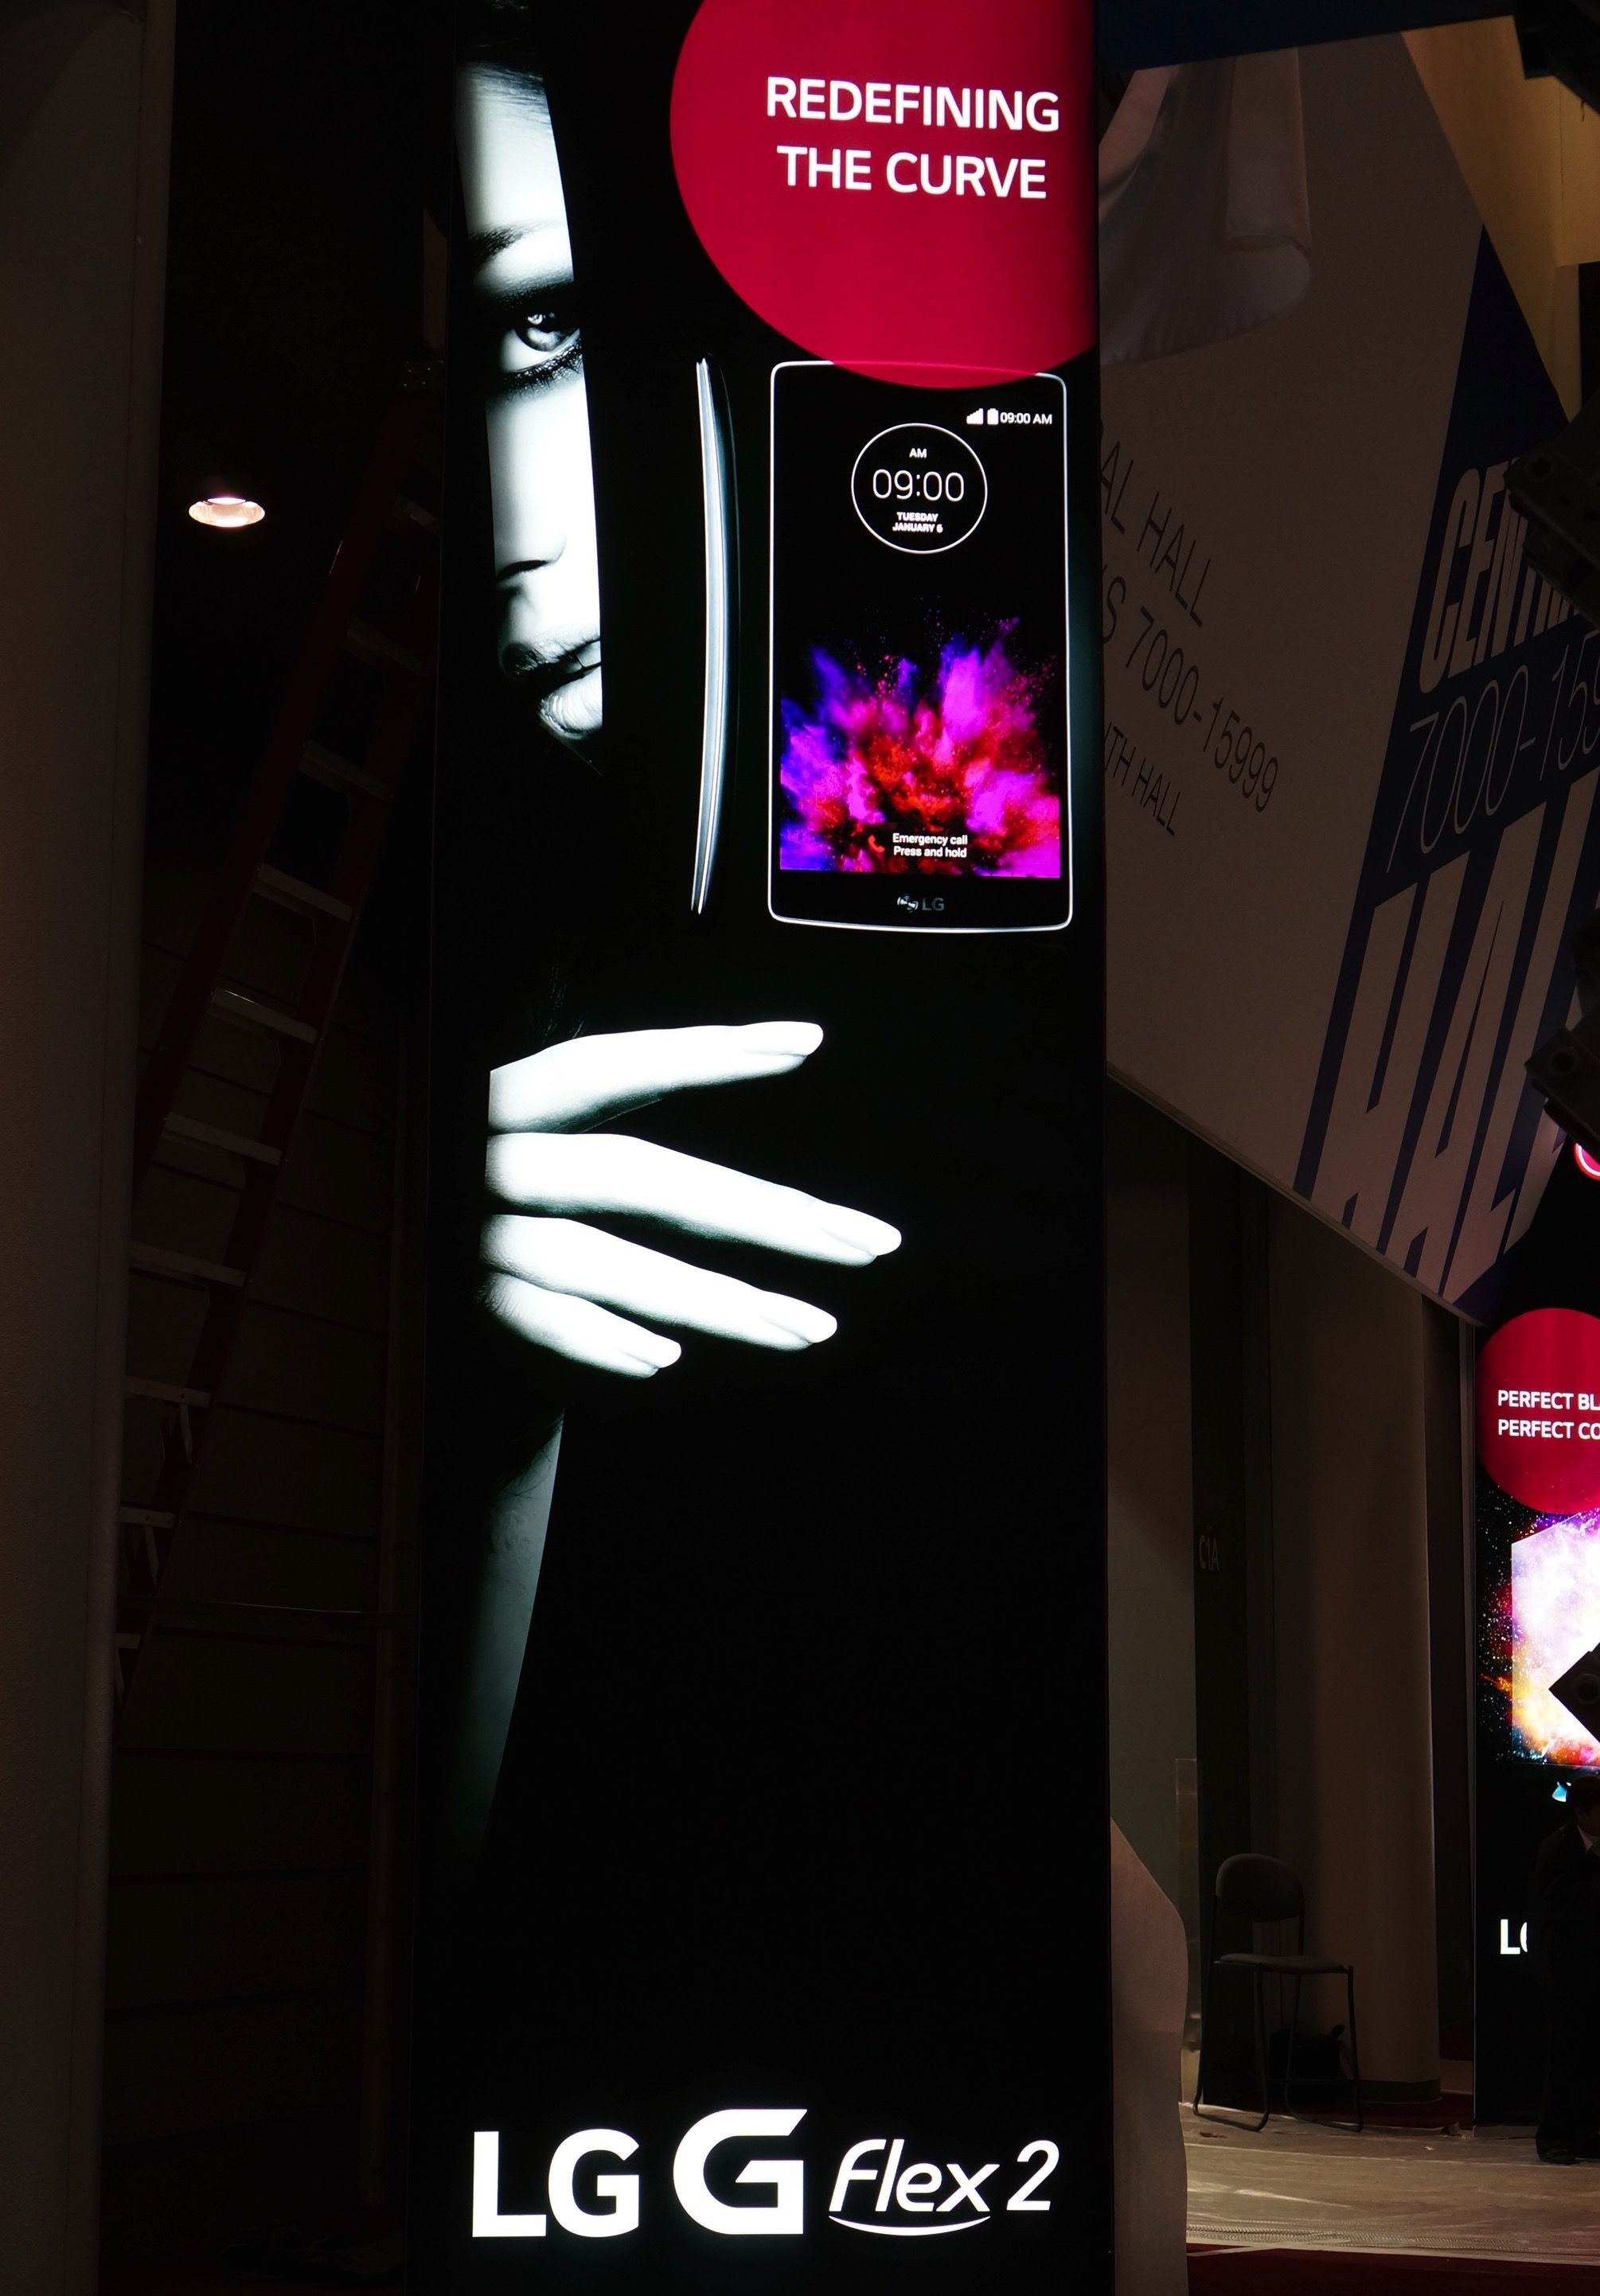 lg-g-flex-2-poster-in-the-wild-ces-2015